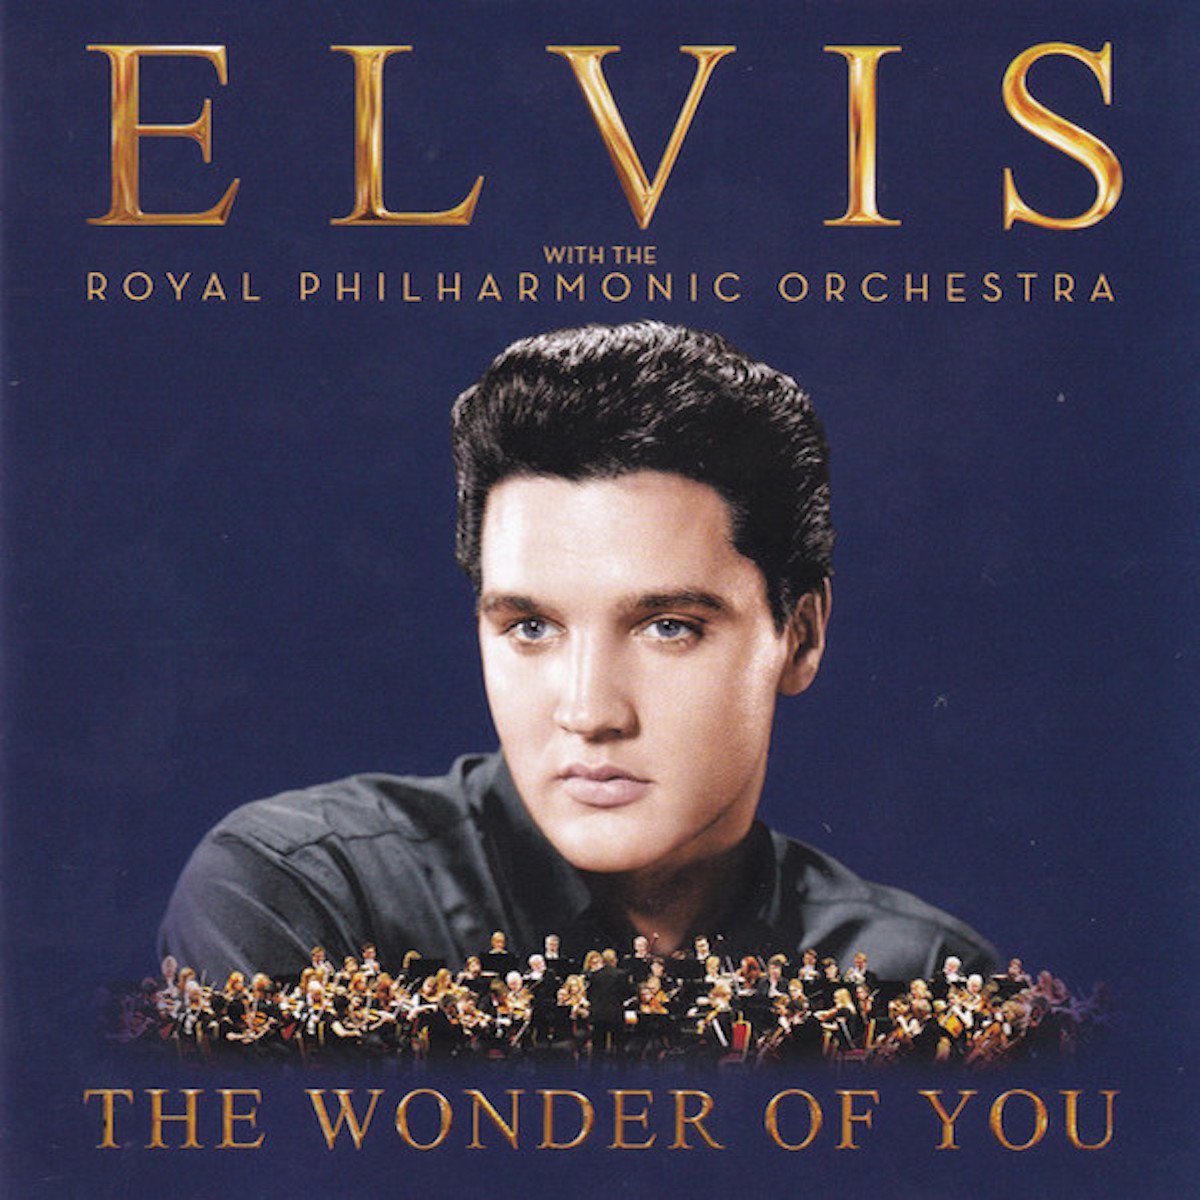 Elvis with The Royal Philharmonic Orchestra – The Wonder of You